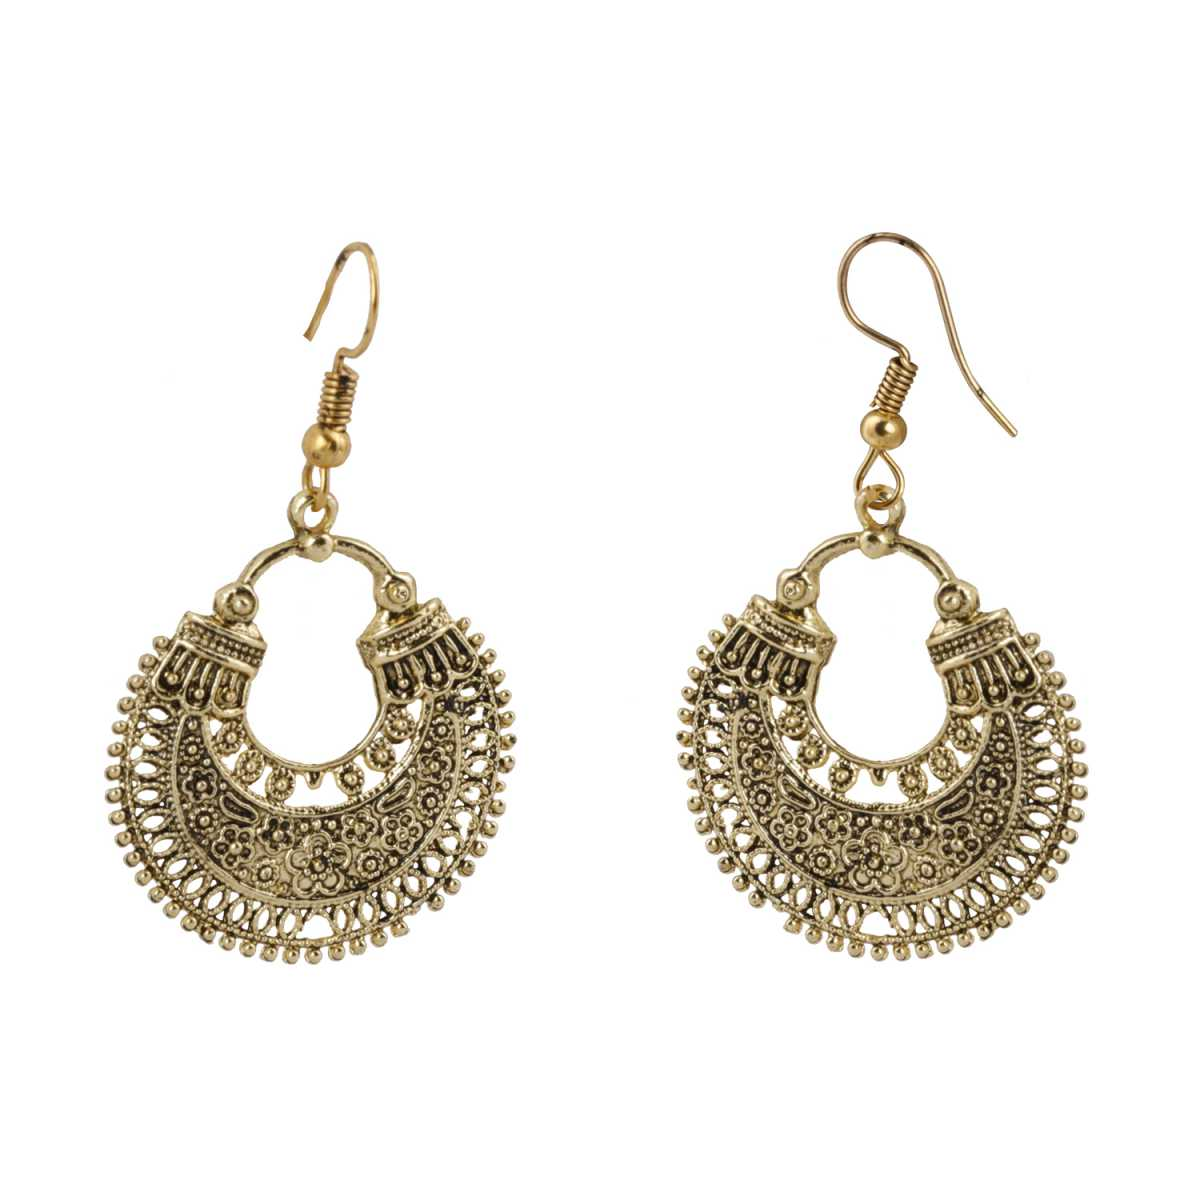 Silver Shine Facinating Chandbali Unique Golden Earrings for Women